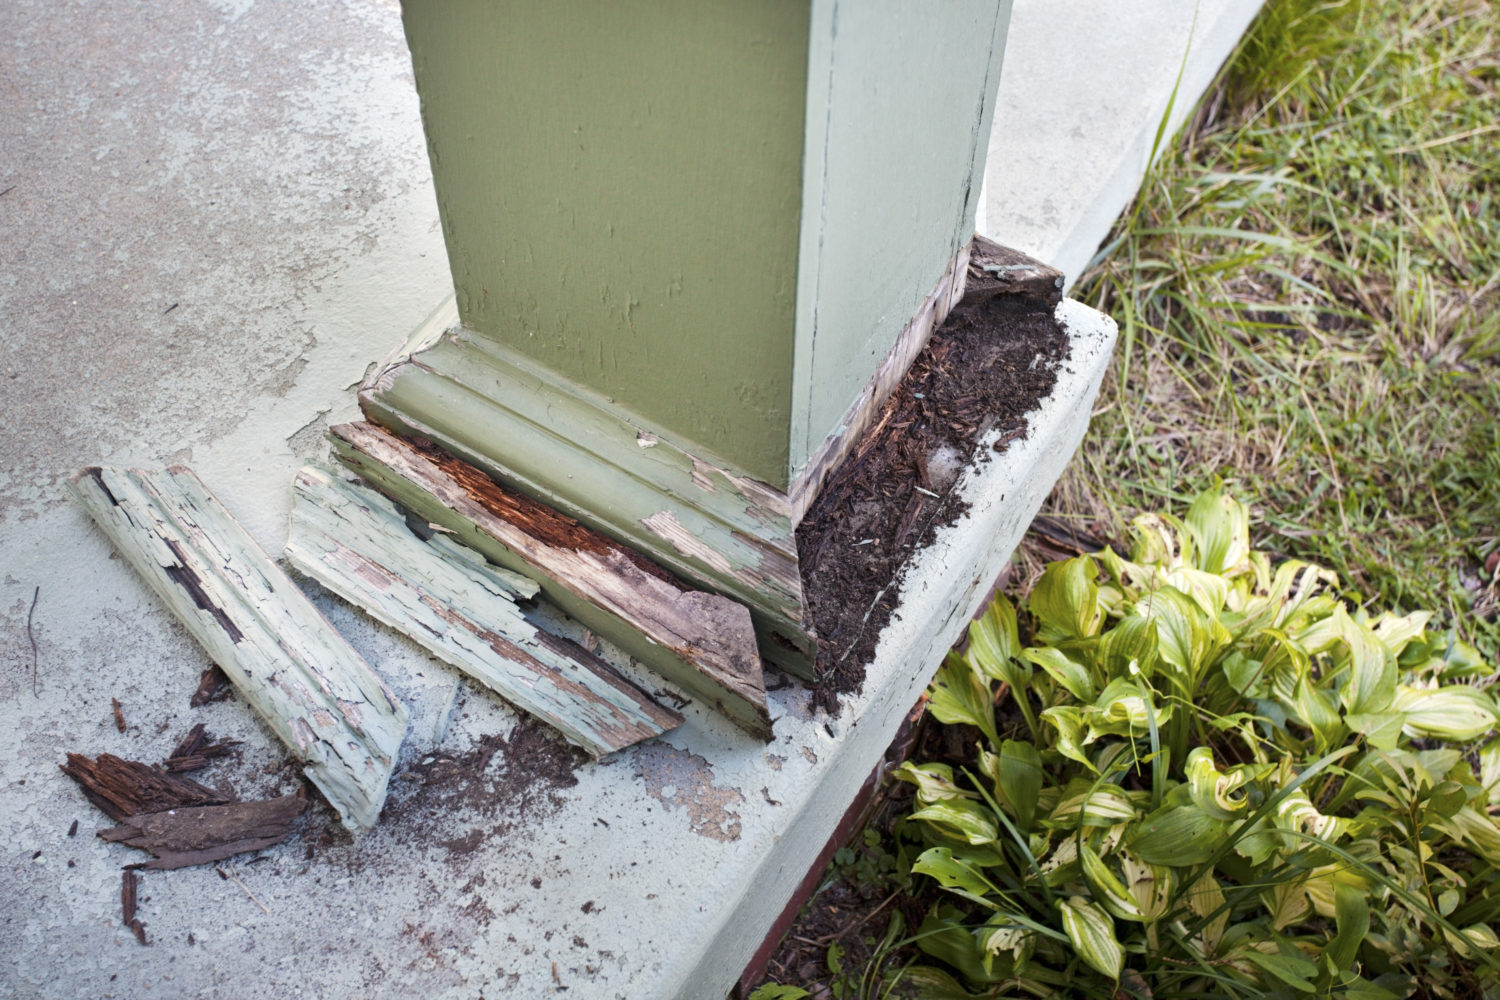 termite damage to a supporting post of a home